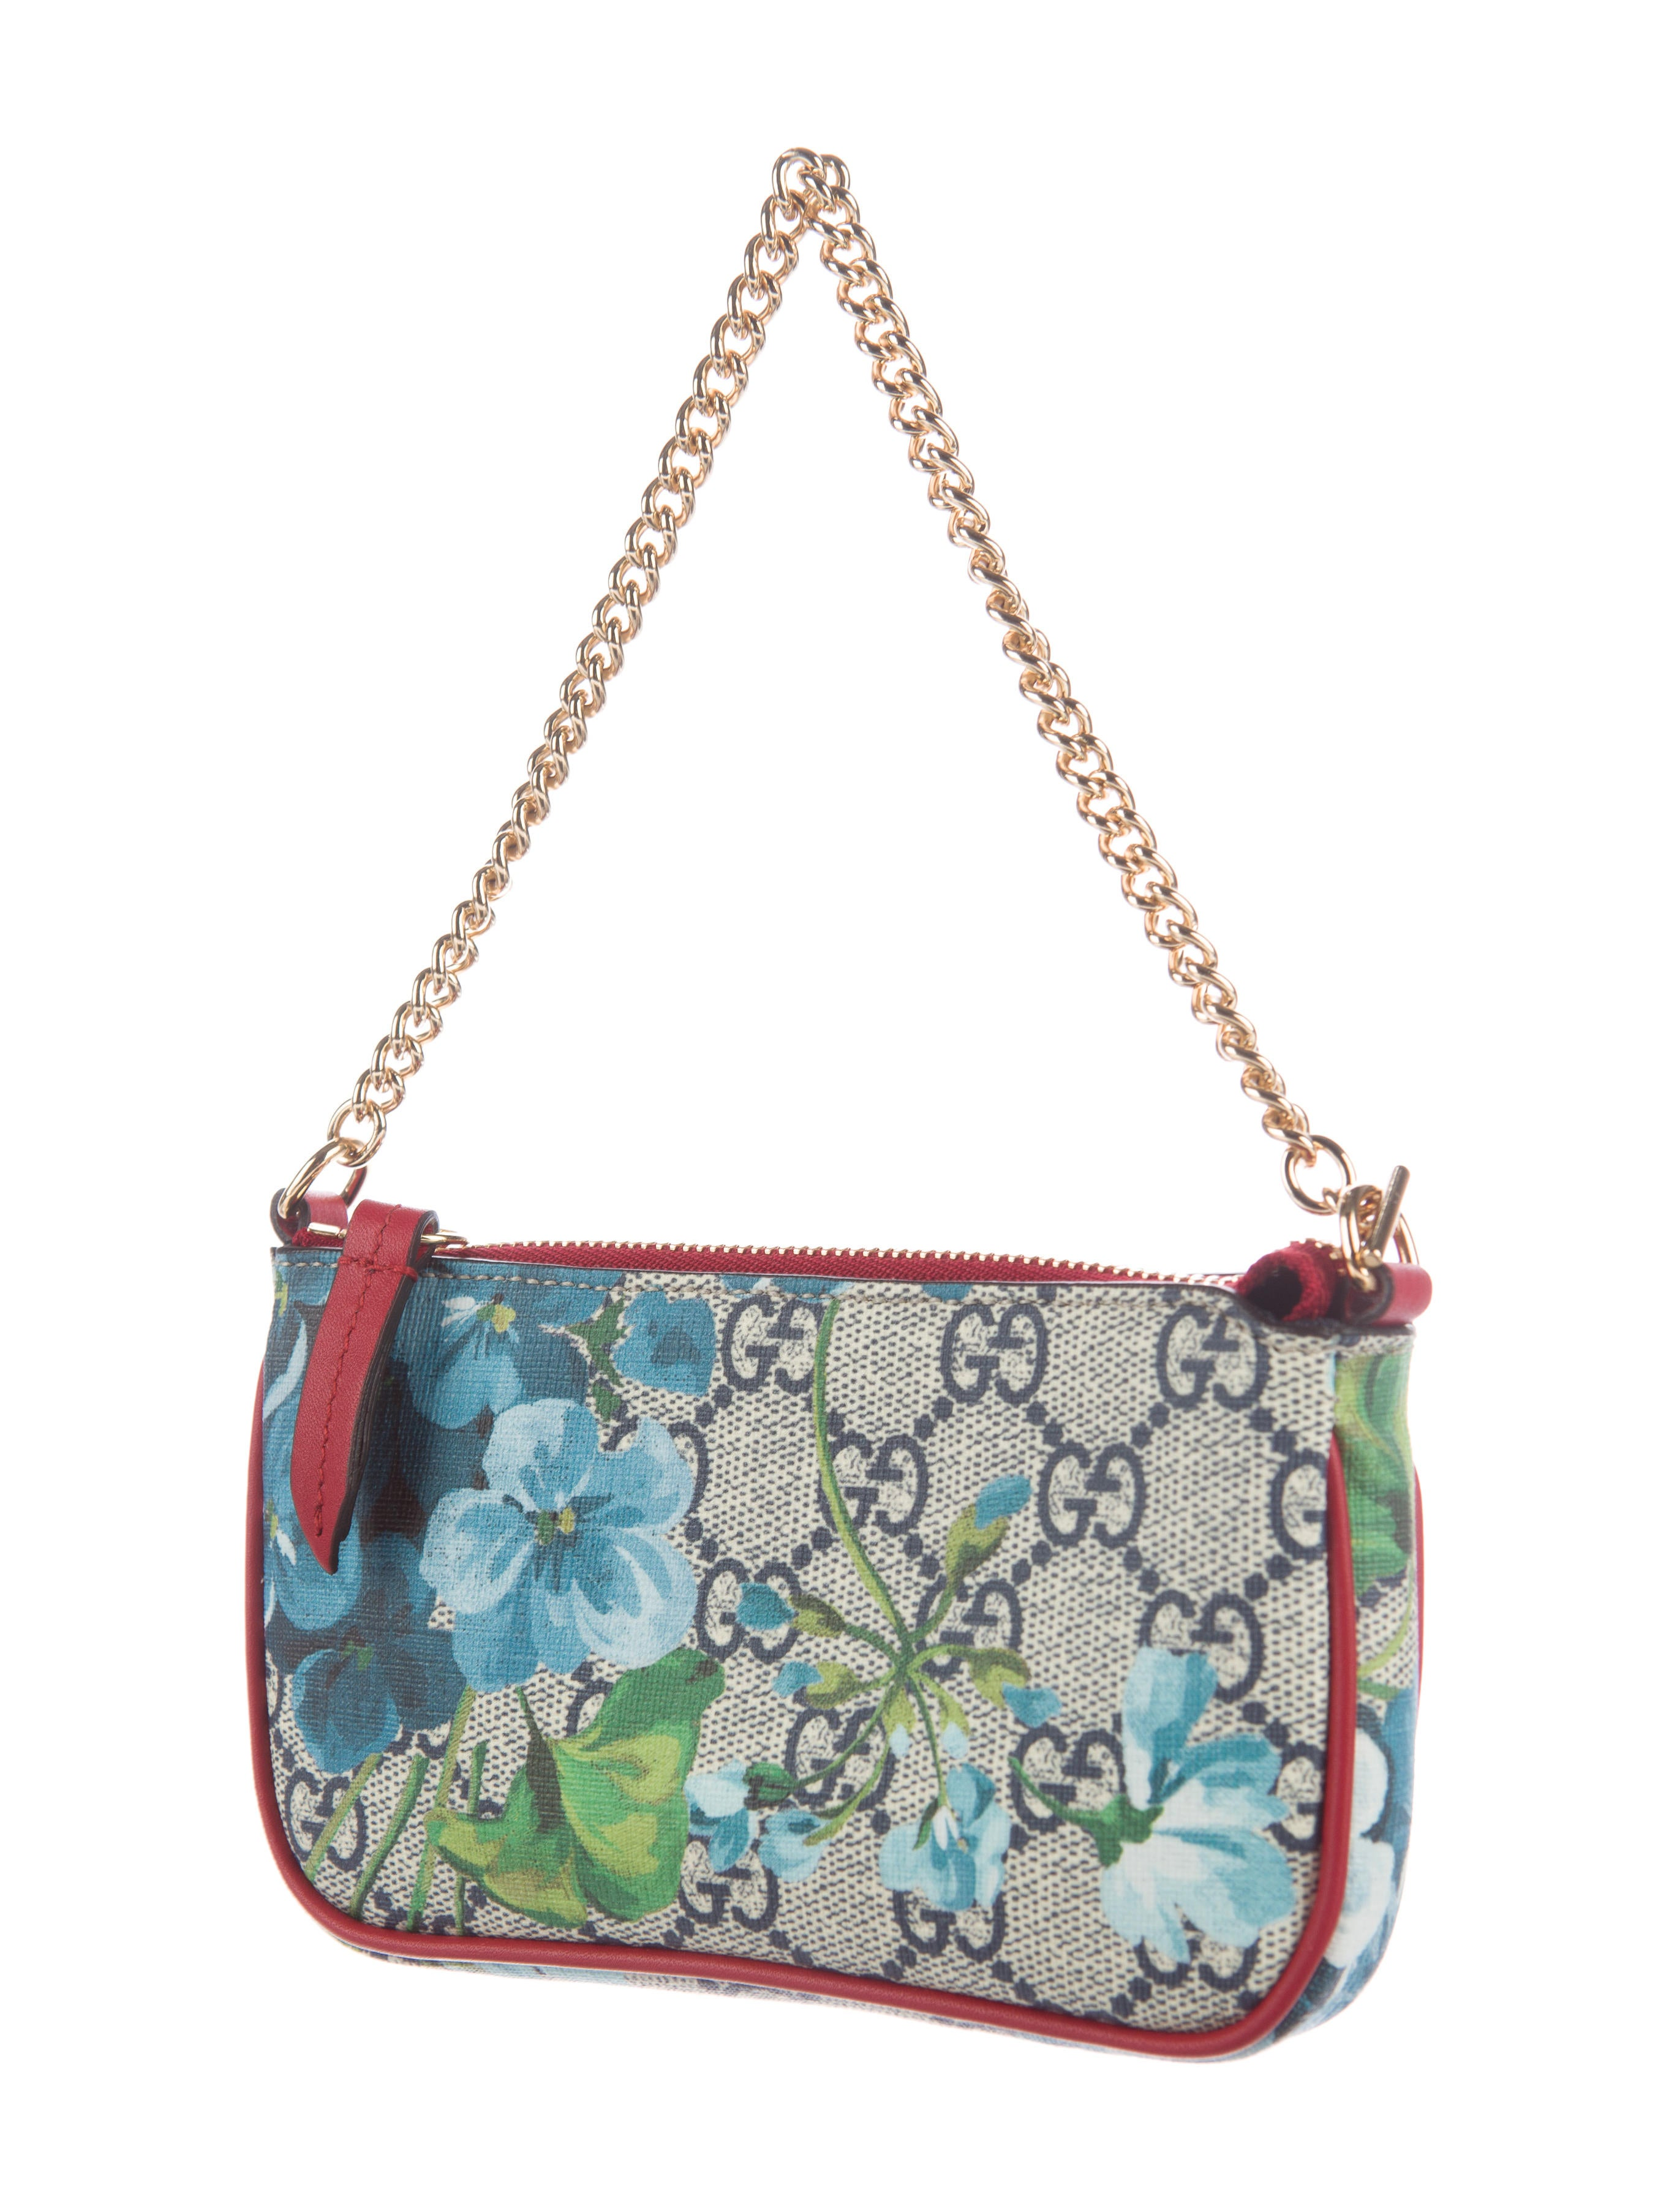 032f20698cf4 Gucci Gg Blooms Mini Bag | Stanford Center for Opportunity Policy in ...